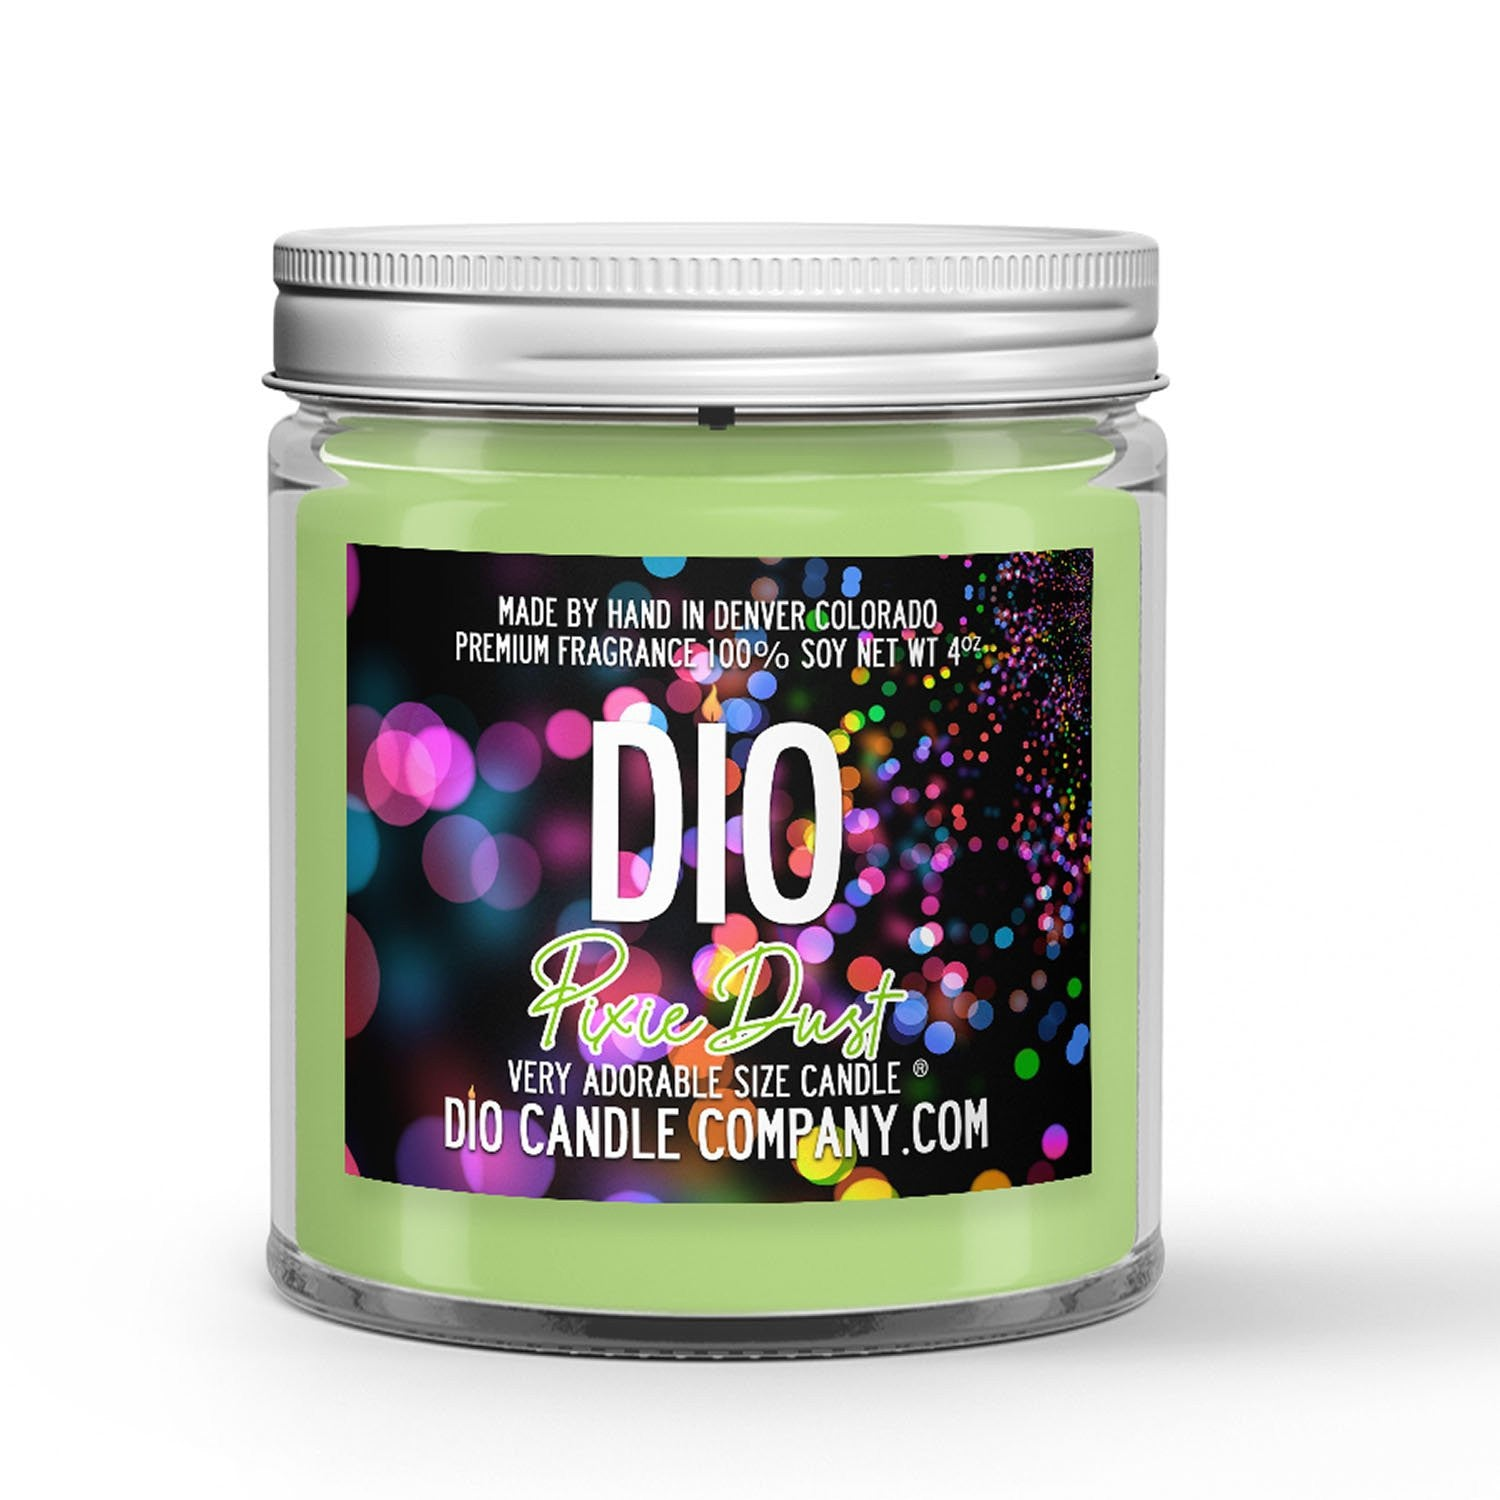 Pixie Dust Candle Sea Water - Coconut Milk Scented - Dio Candle Company